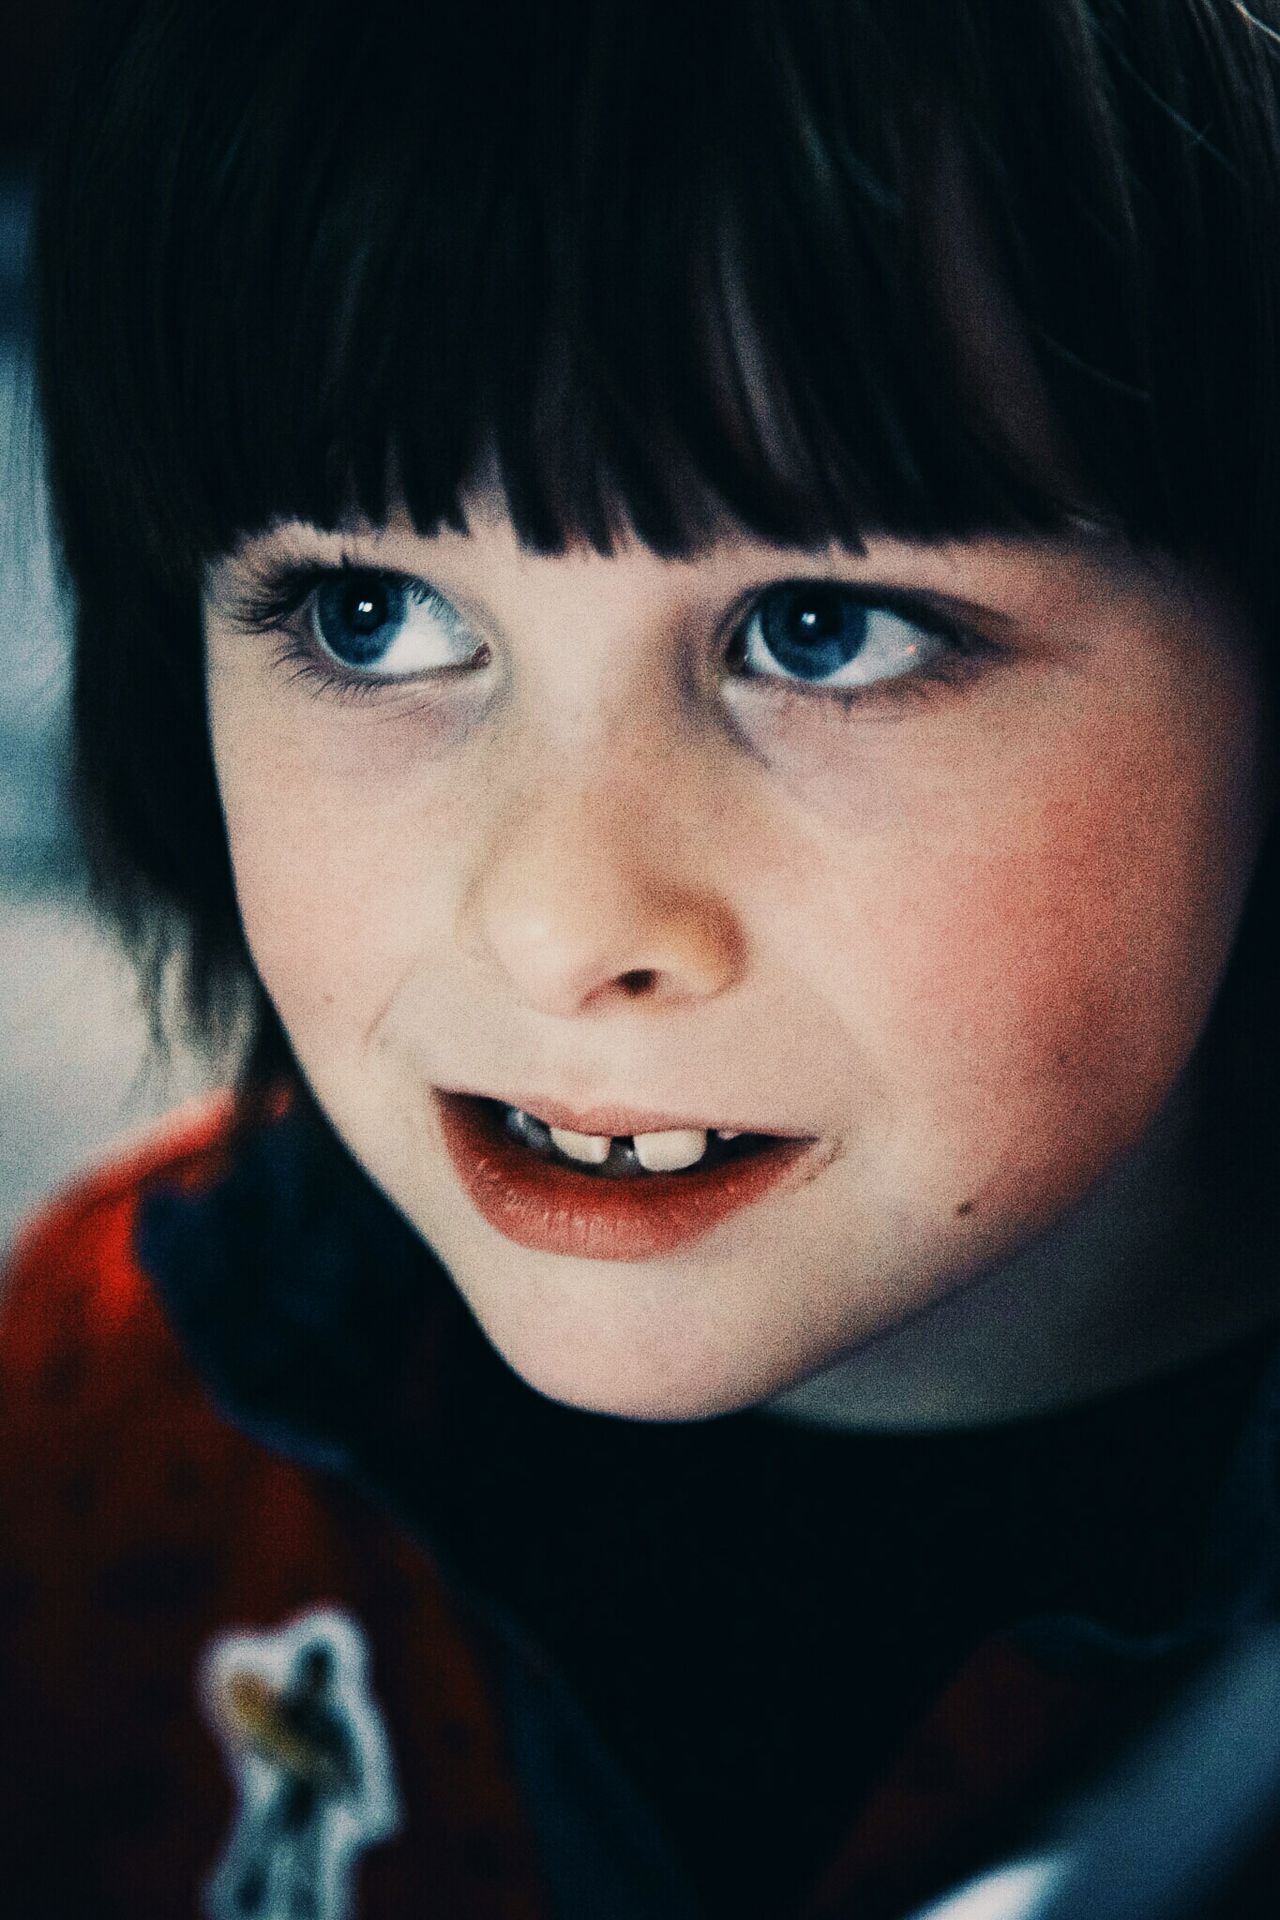 Portrait Headshot One Person Close-up Human Face Real People Indoors  Day Child Lauraloophotography Beauty